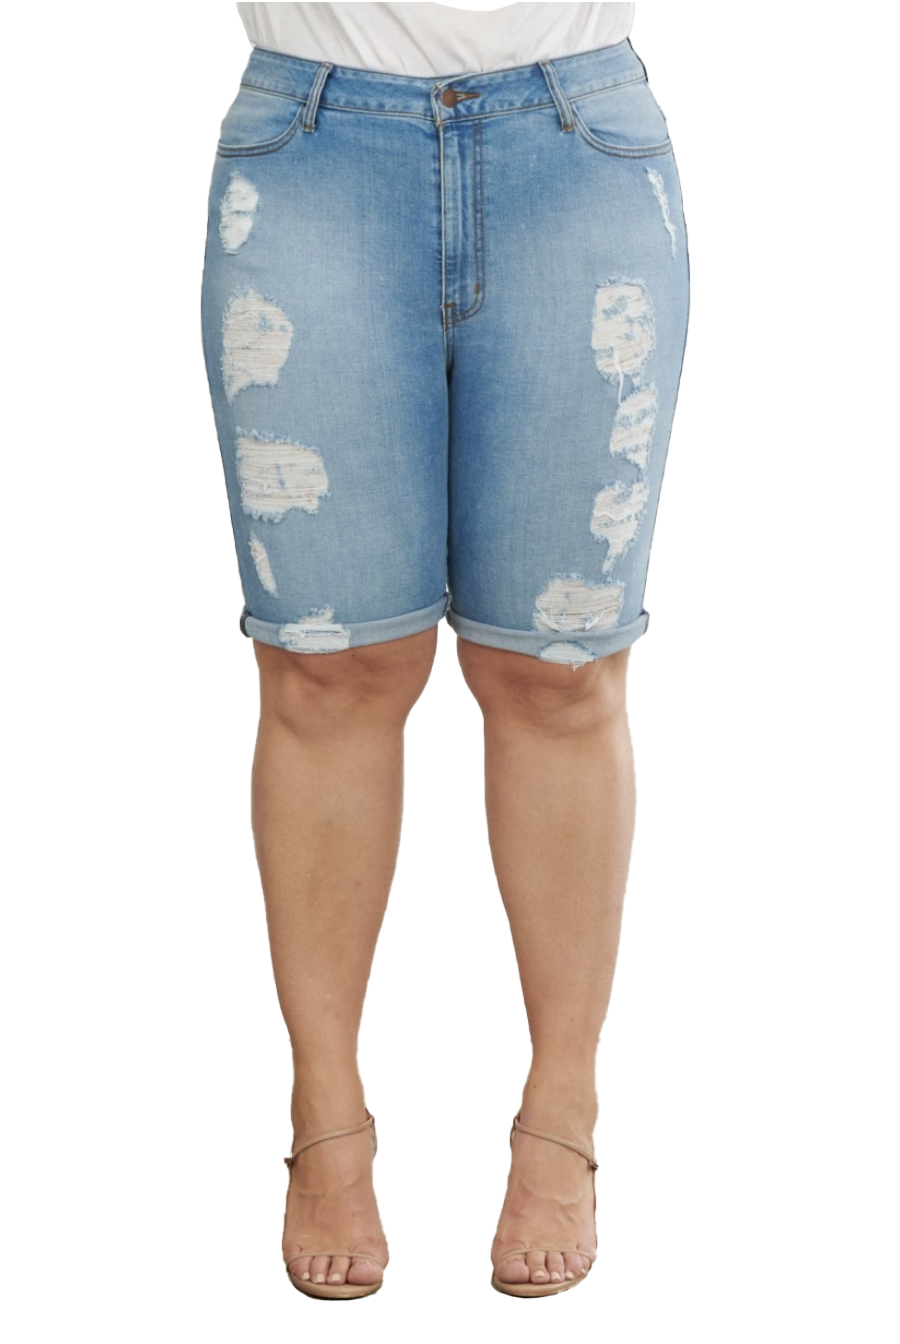 {{P815}} Curvy Cuffed Distressed BoyFriend Shorts (Short Cuffs can roll down) - The House of Stylez